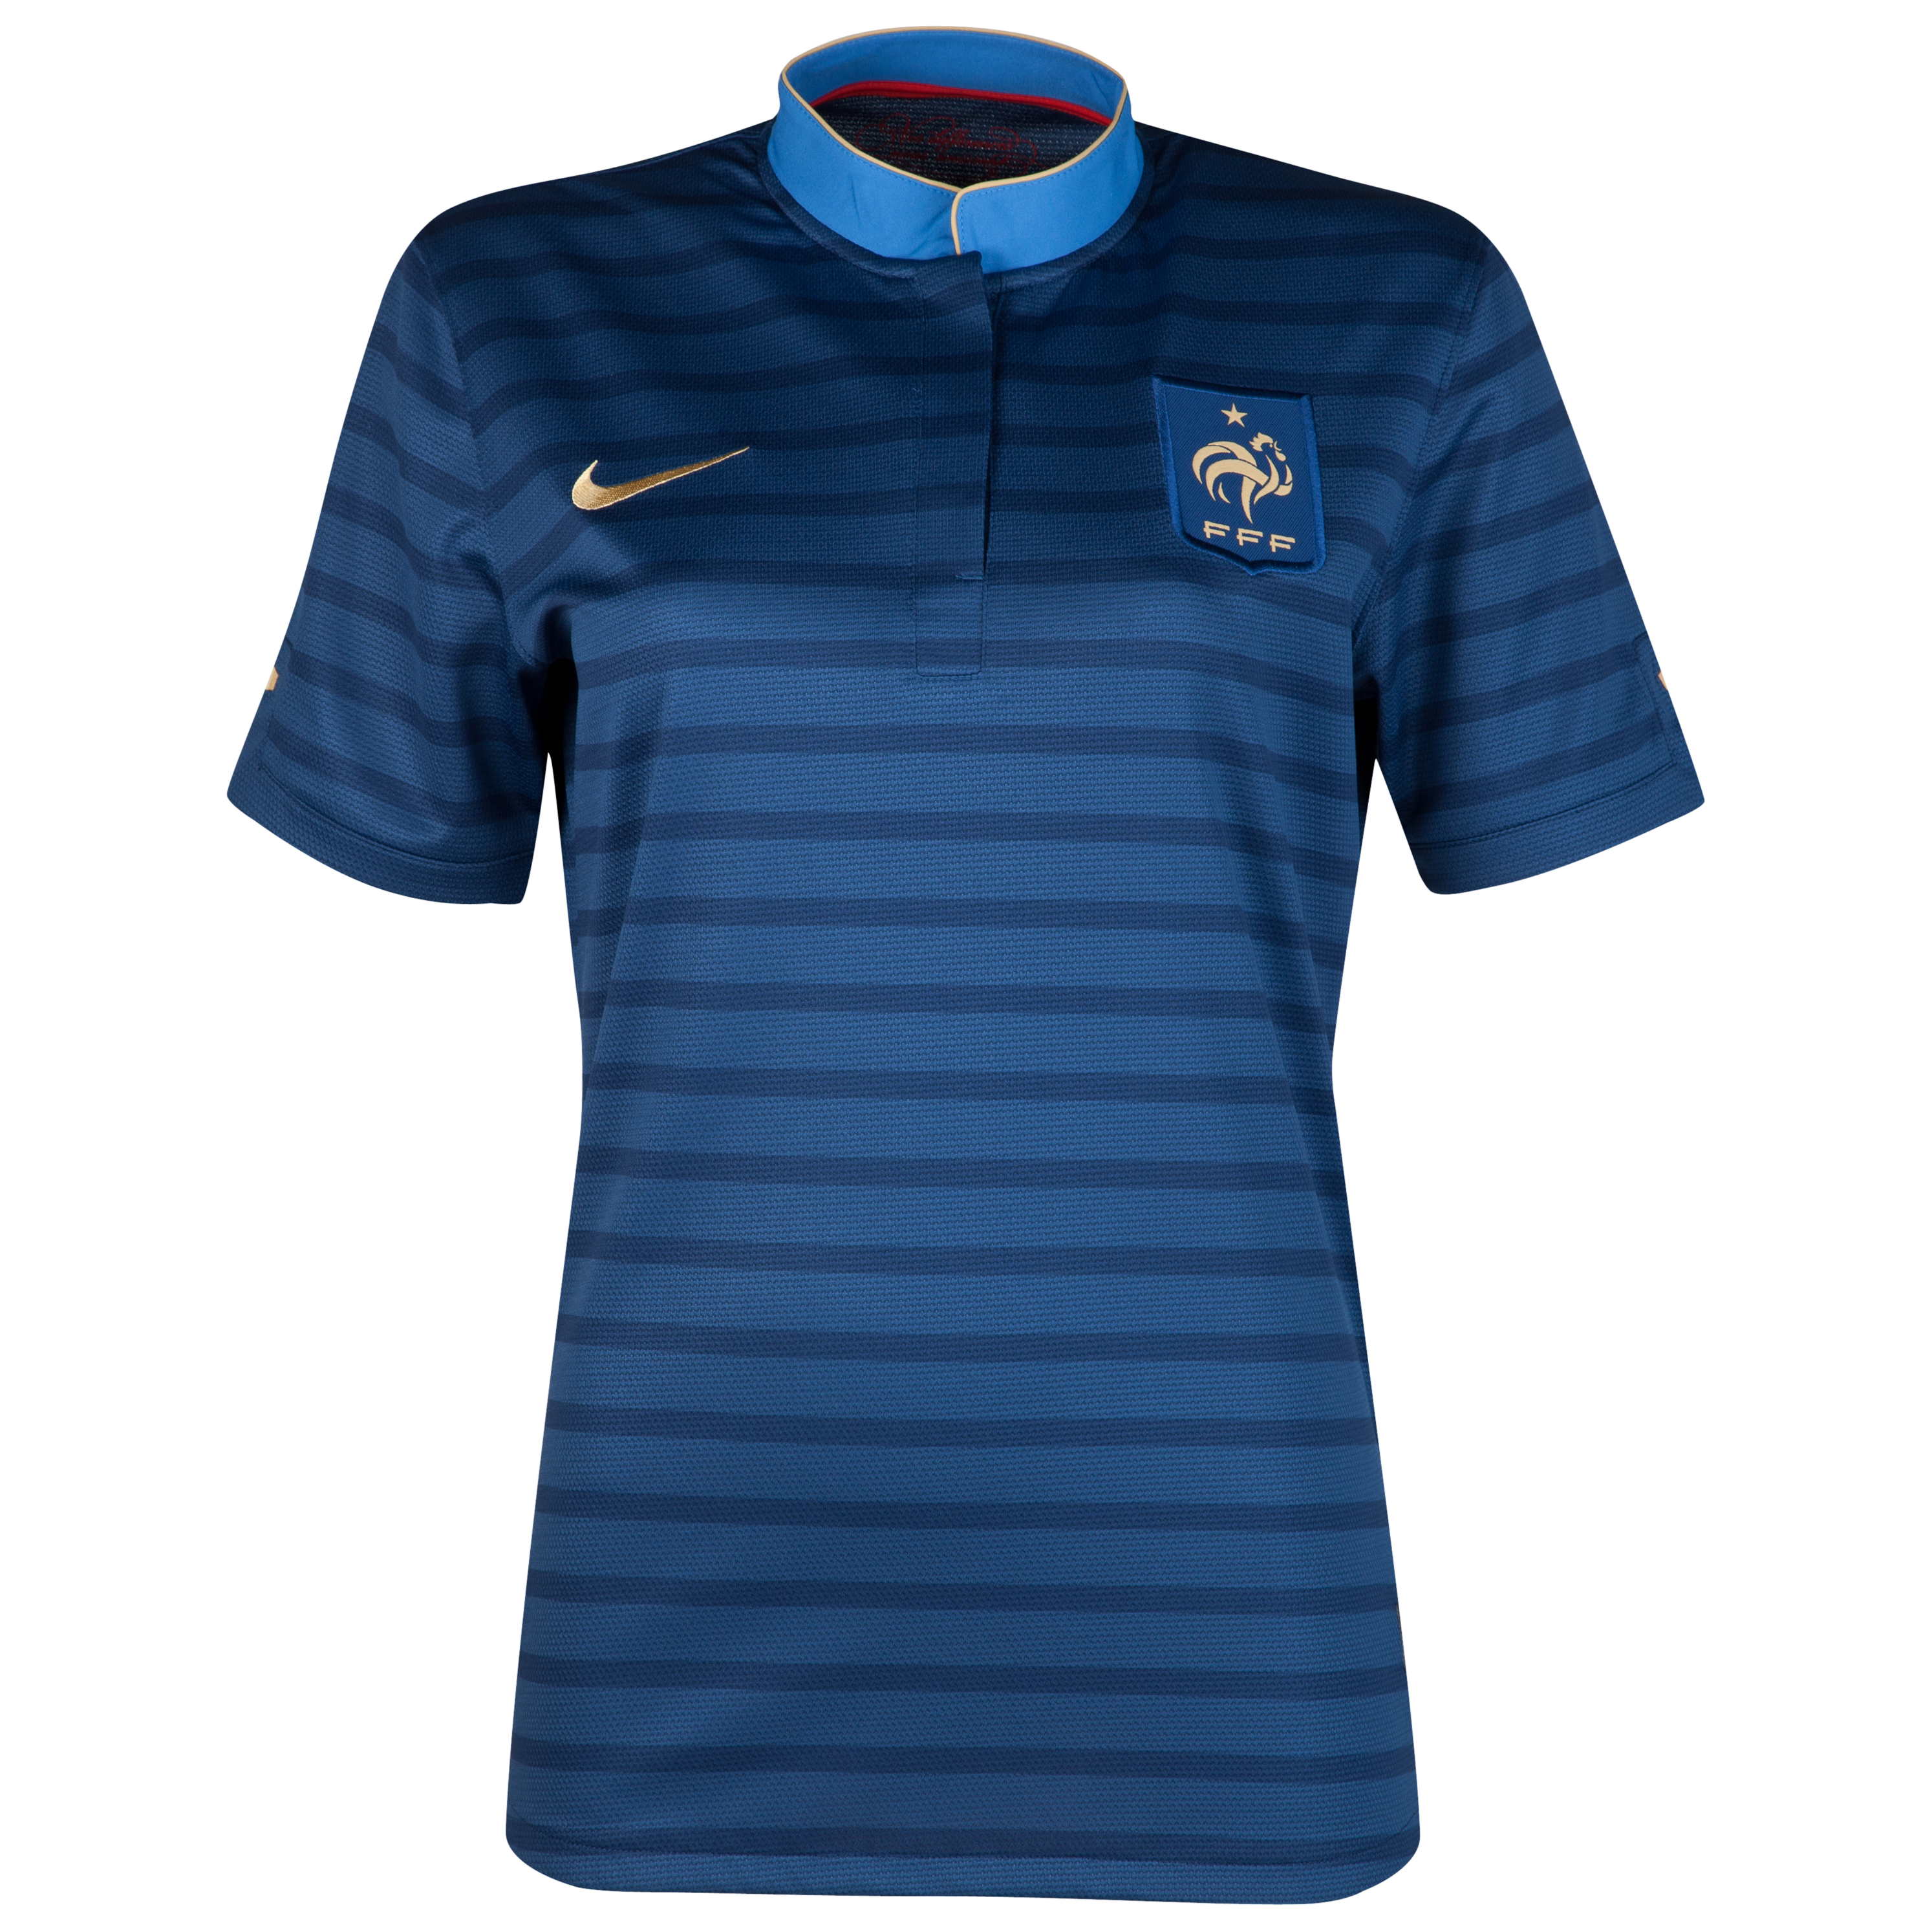 France Home Shirt 2012/13 - Womens